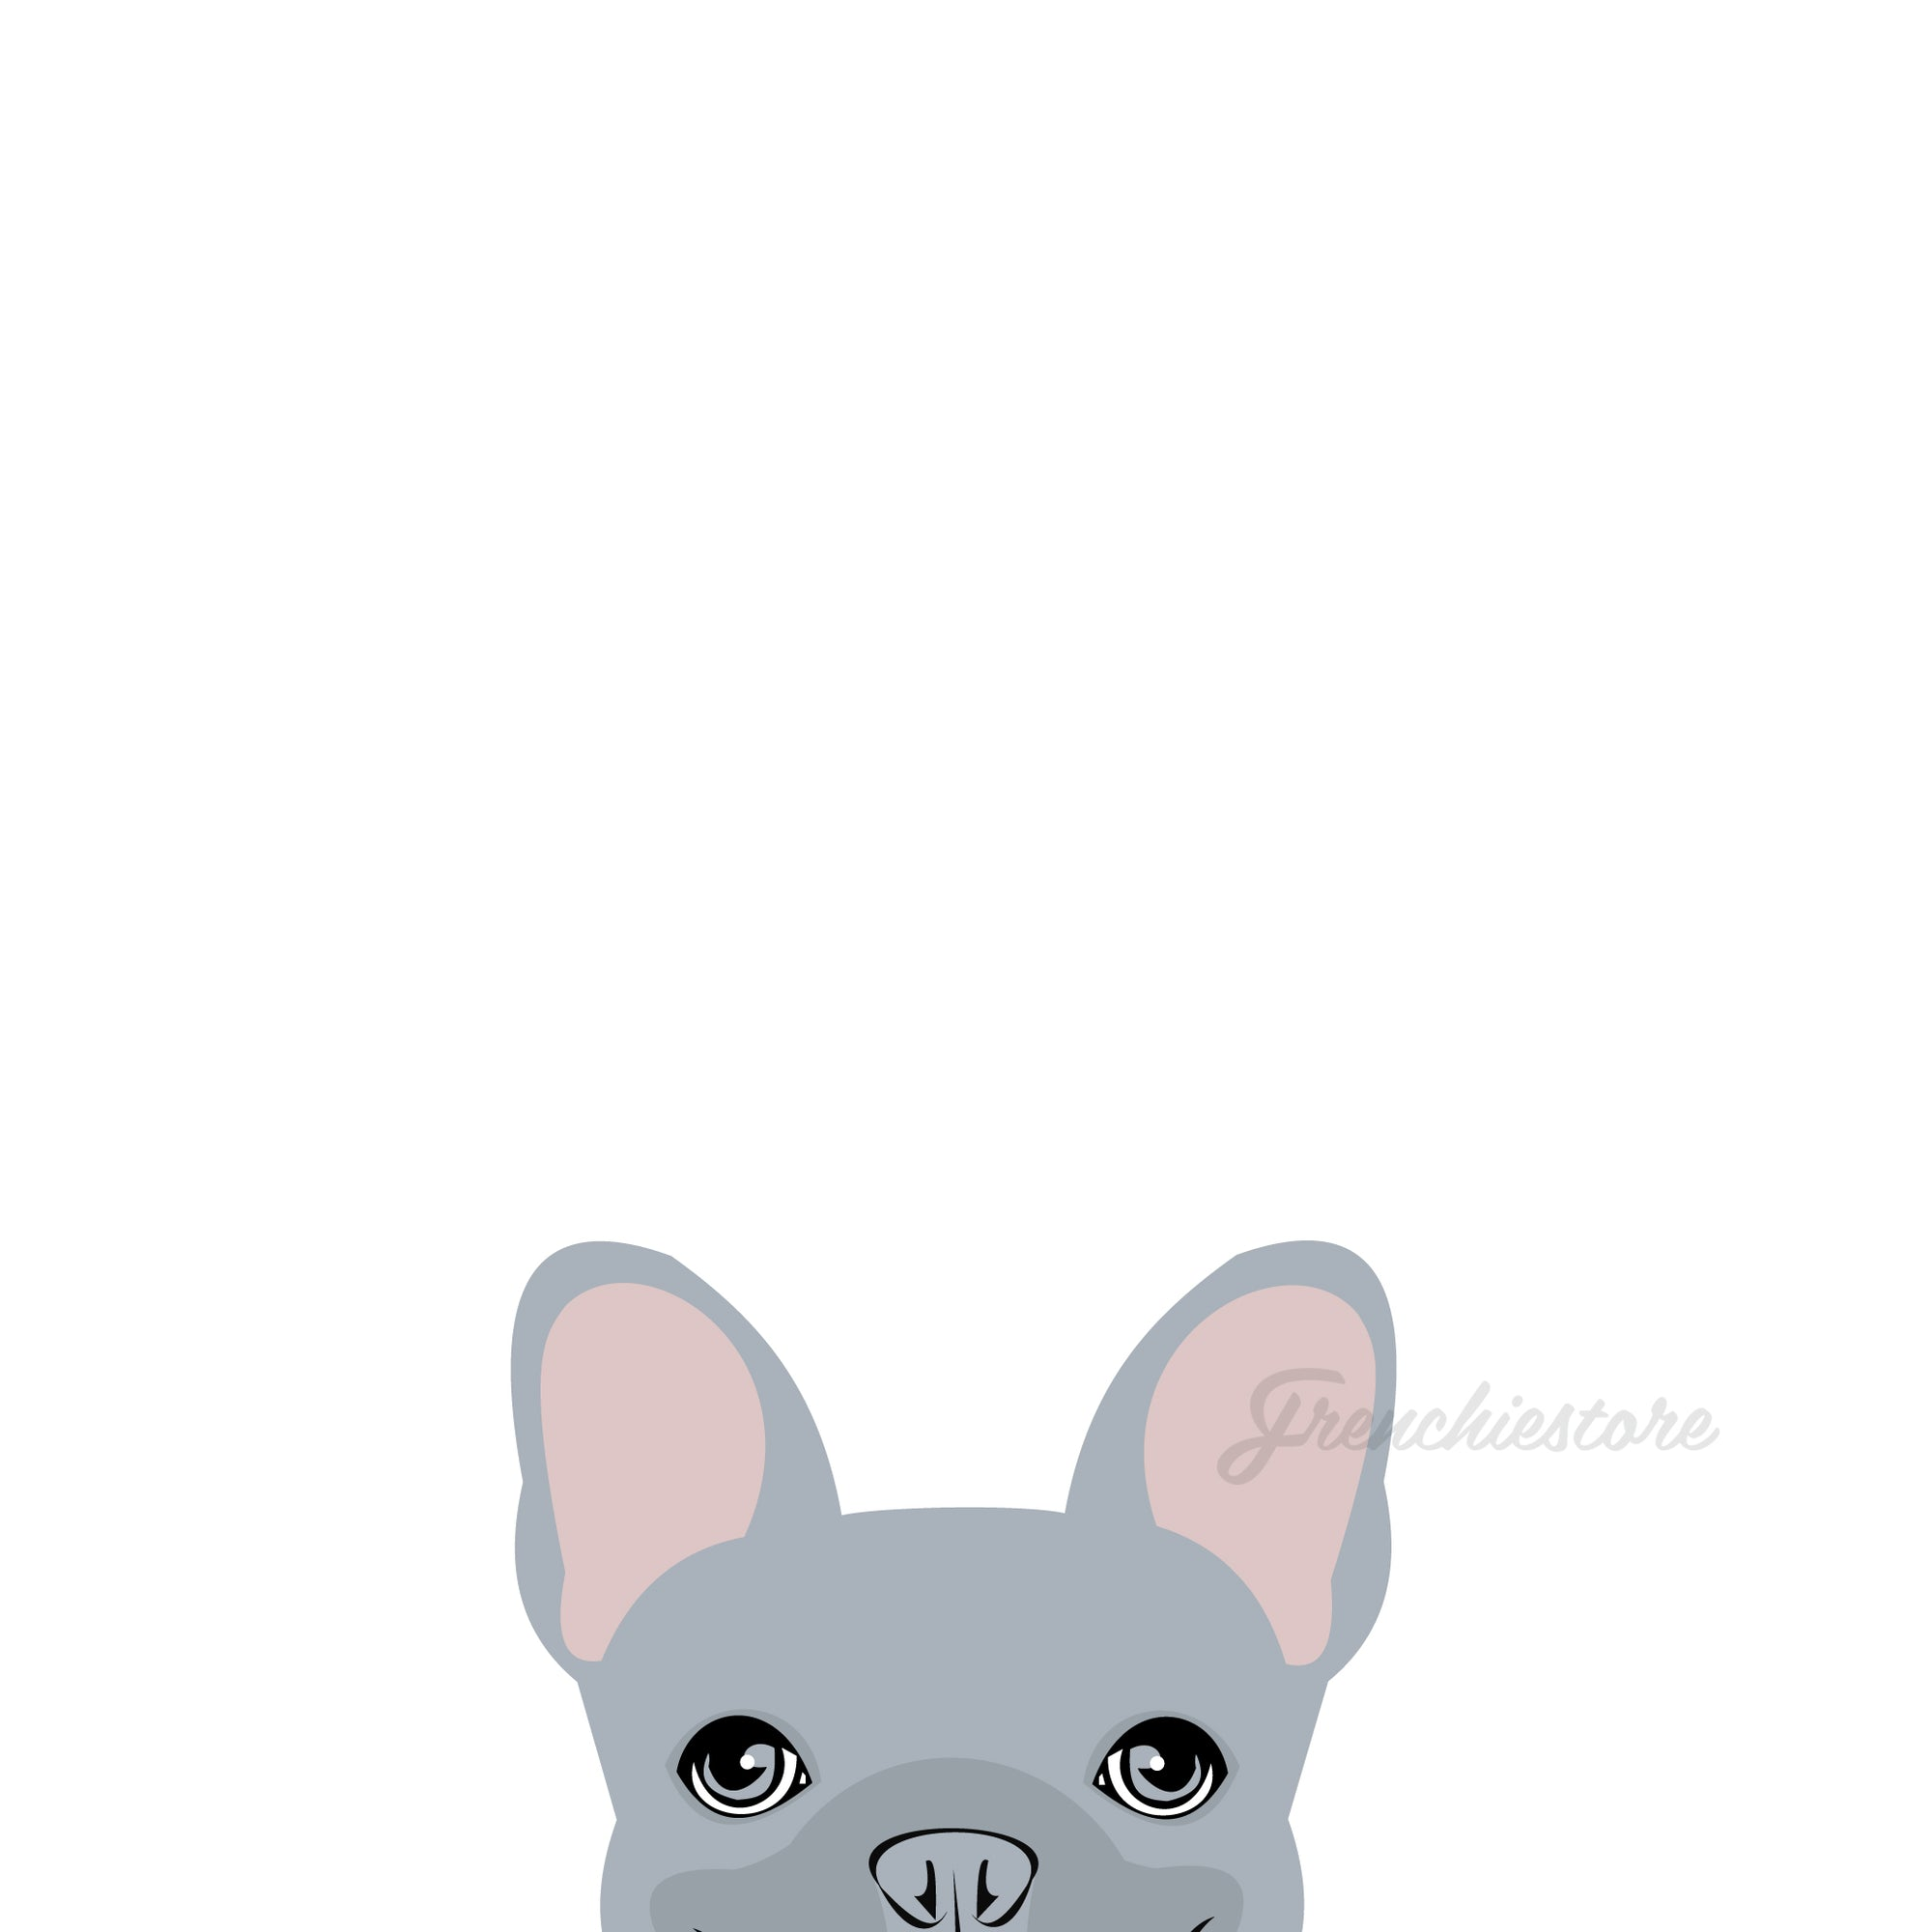 Autocollant Frenchie | Frenchiestore | Sticker voiture bouledogue français lilas